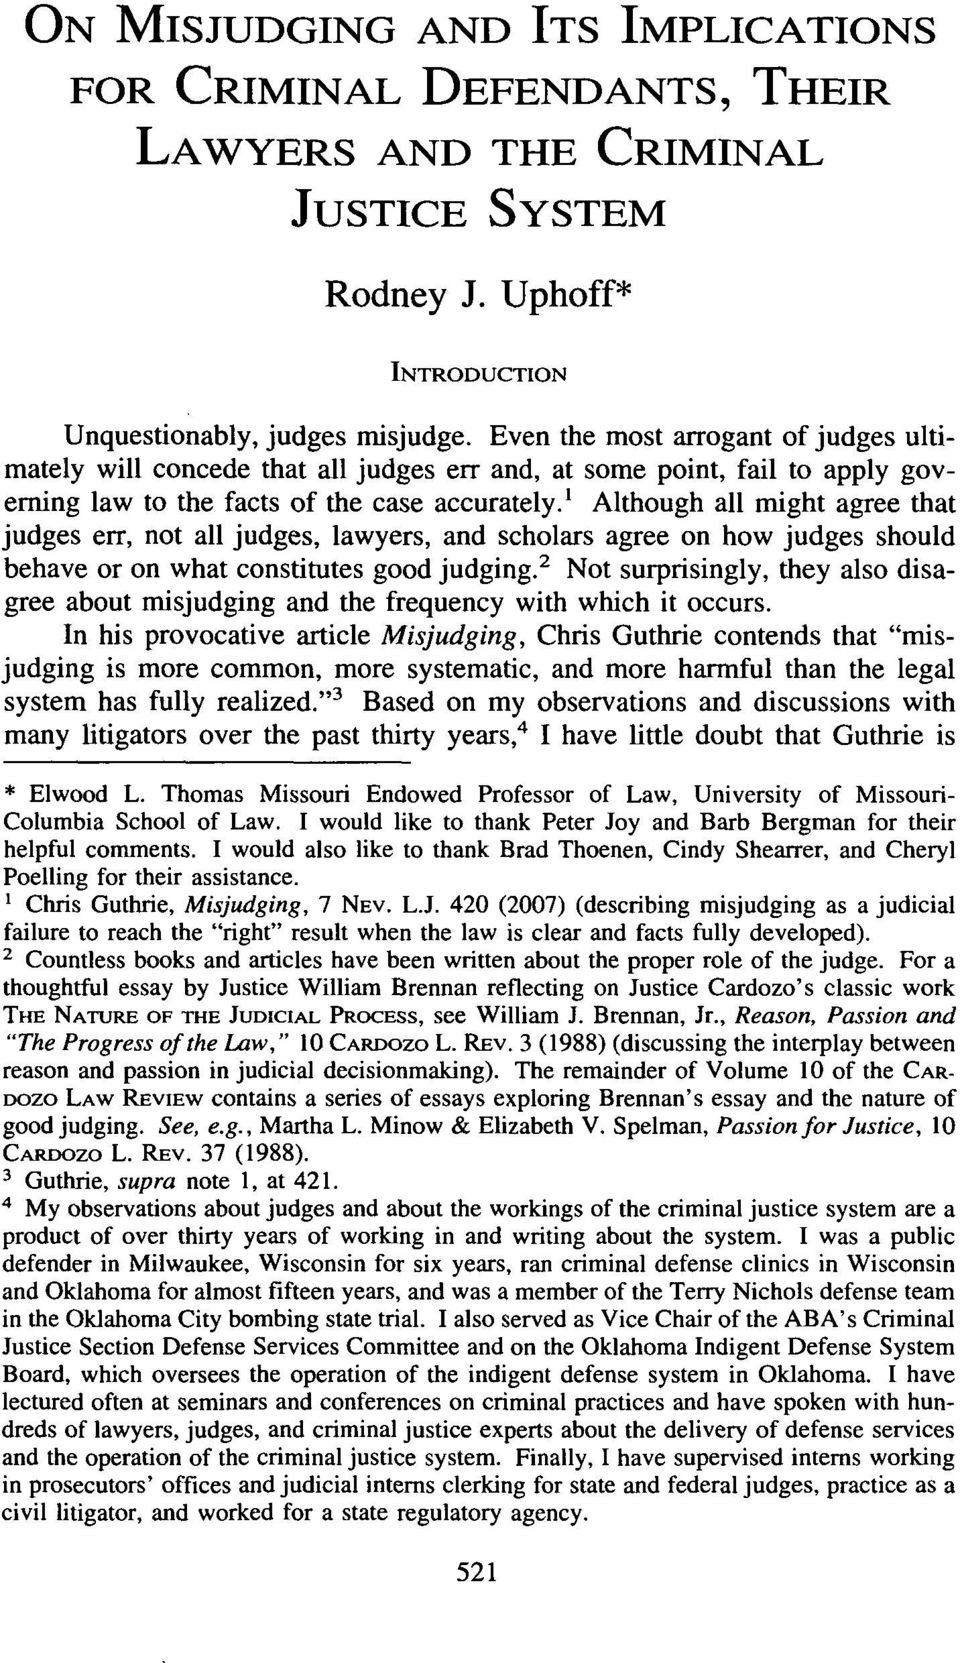 ' Although all might agree that judges err, not all judges, lawyers, and scholars agree on how judges should behave or on what constitutes good judging.